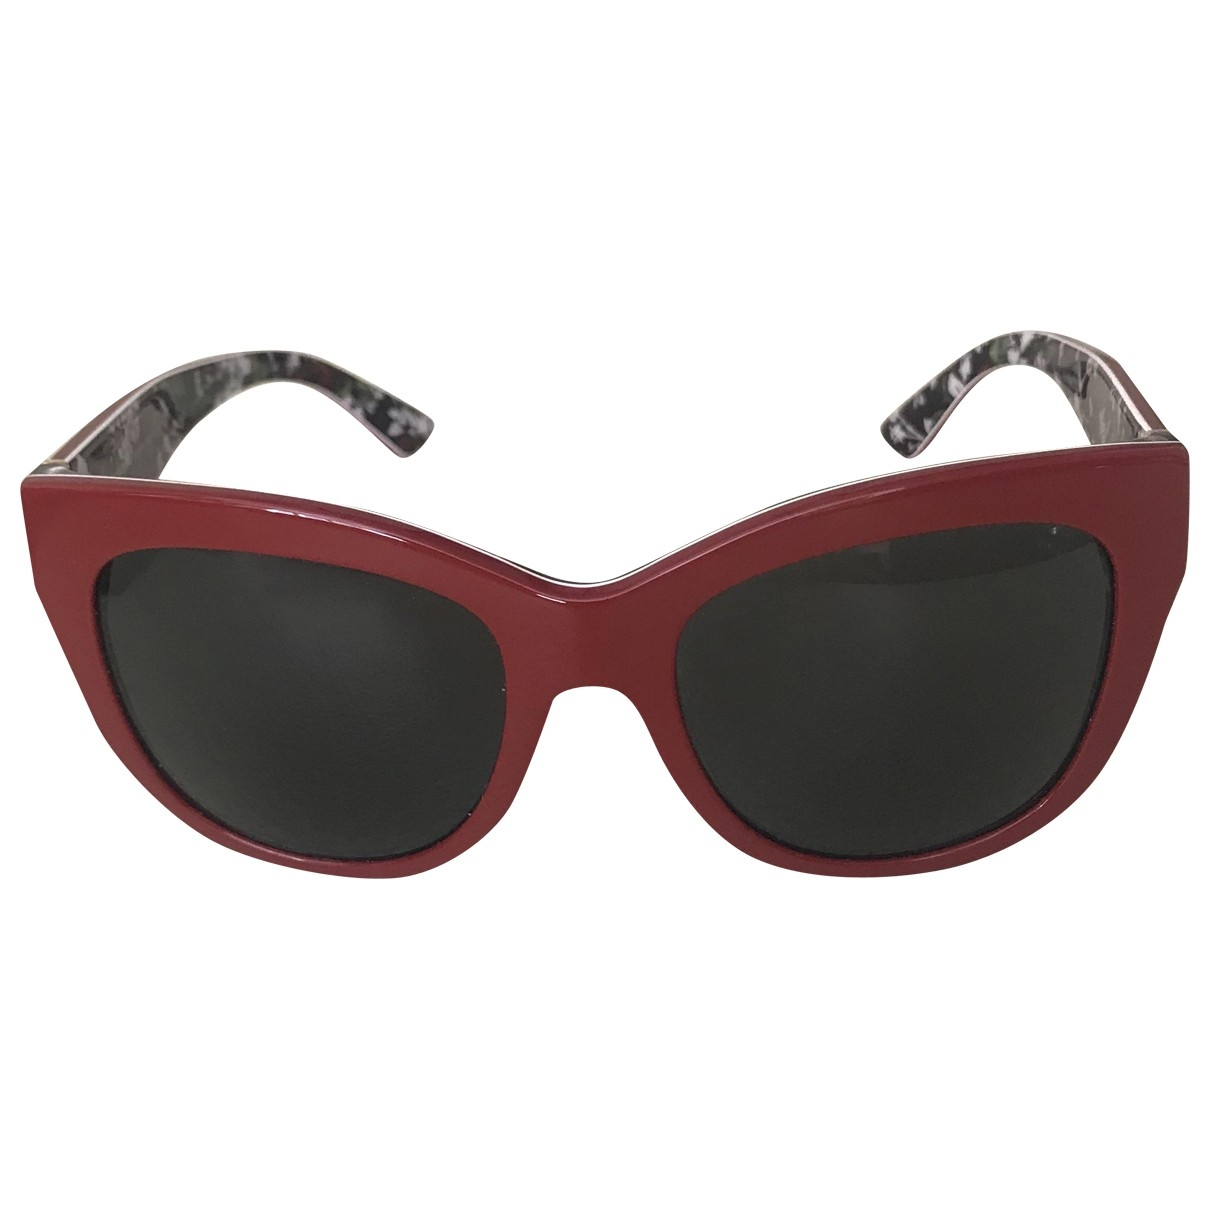 Dolce & Gabbana \N Red Sunglasses for Women \N